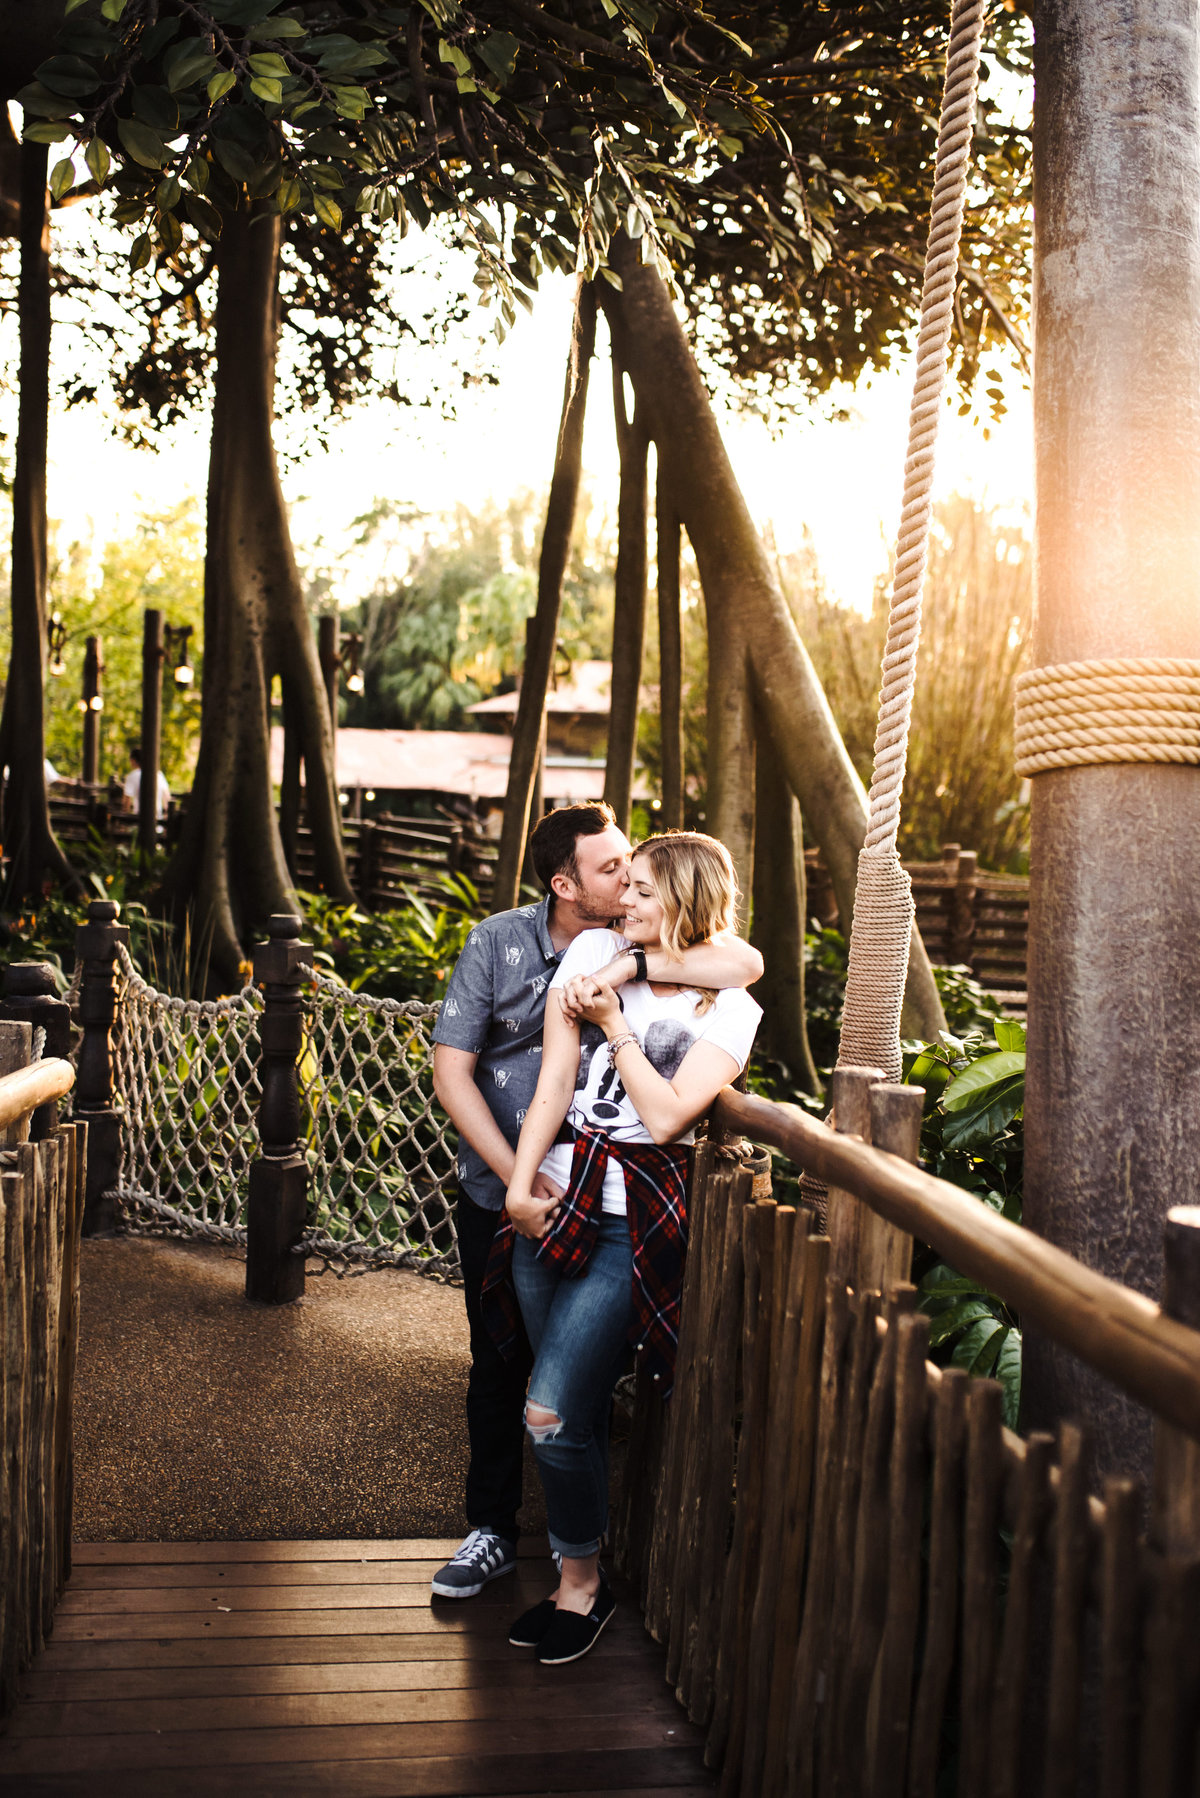 Ally & Brett's Disney Engagement Session (218 of 243)